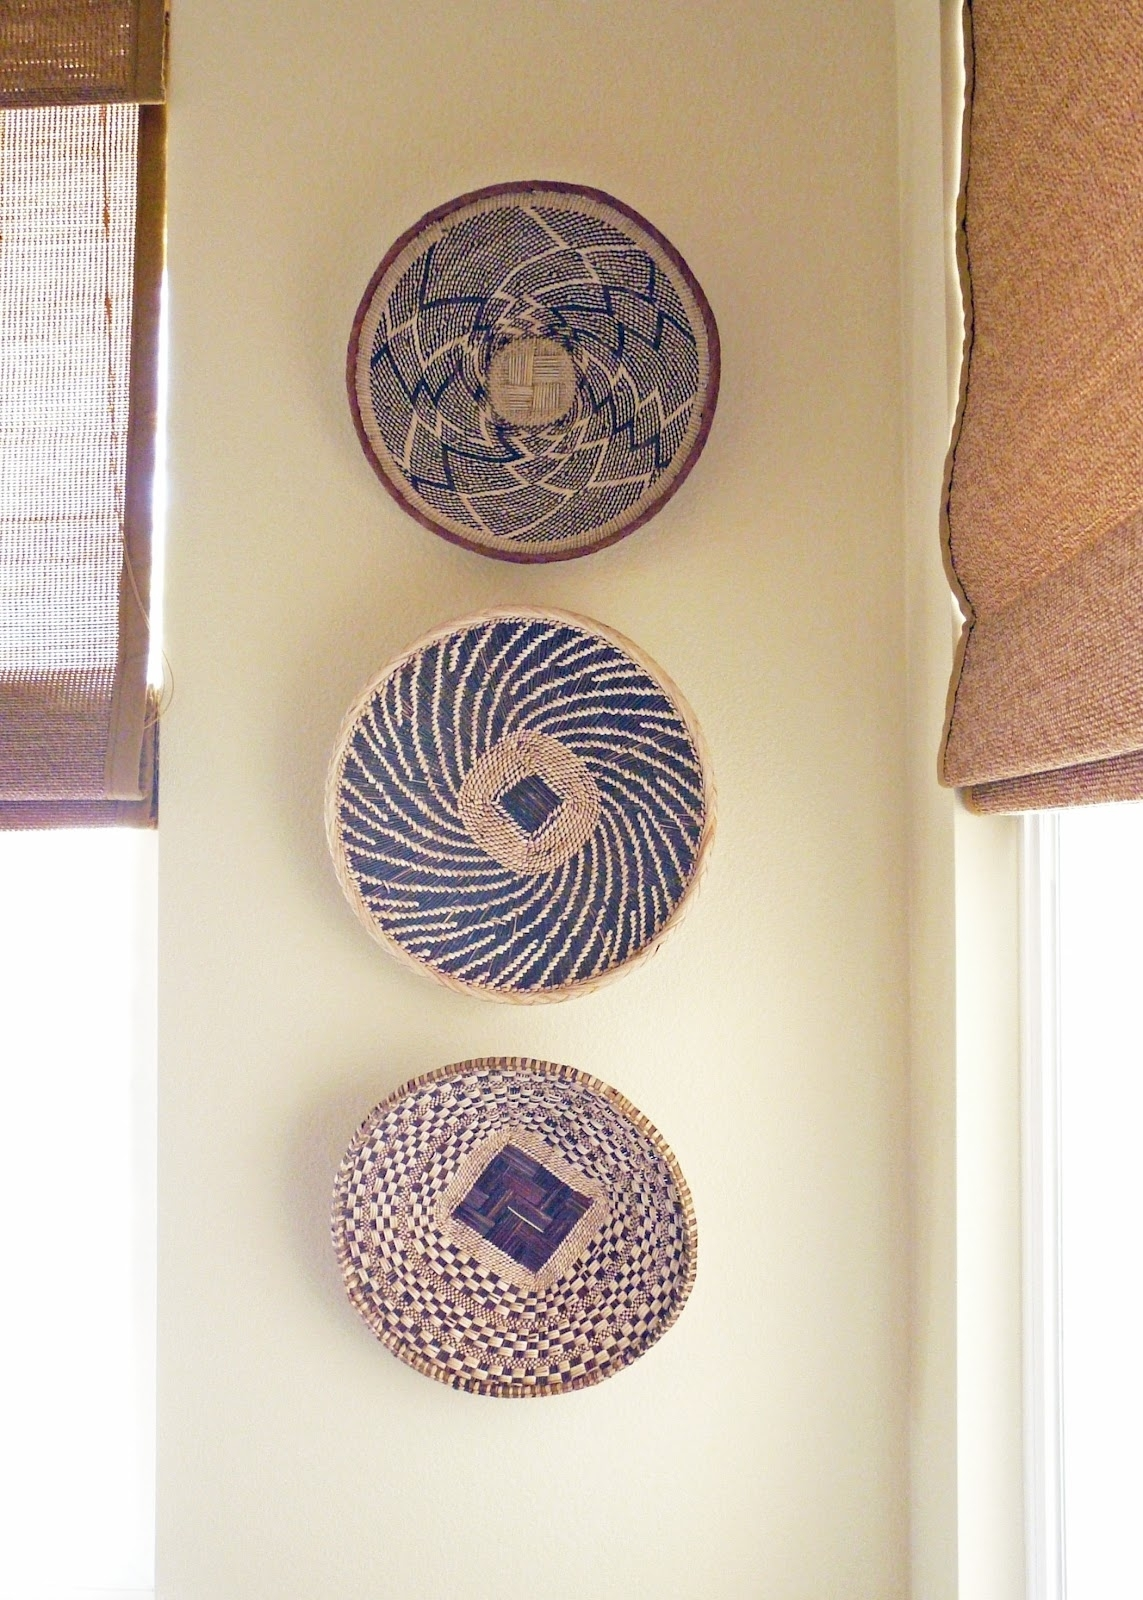 Wall Decor: Good Look Baskets As Wall Decor Woven Wall Baskets In Recent African Wall Accents (View 13 of 15)